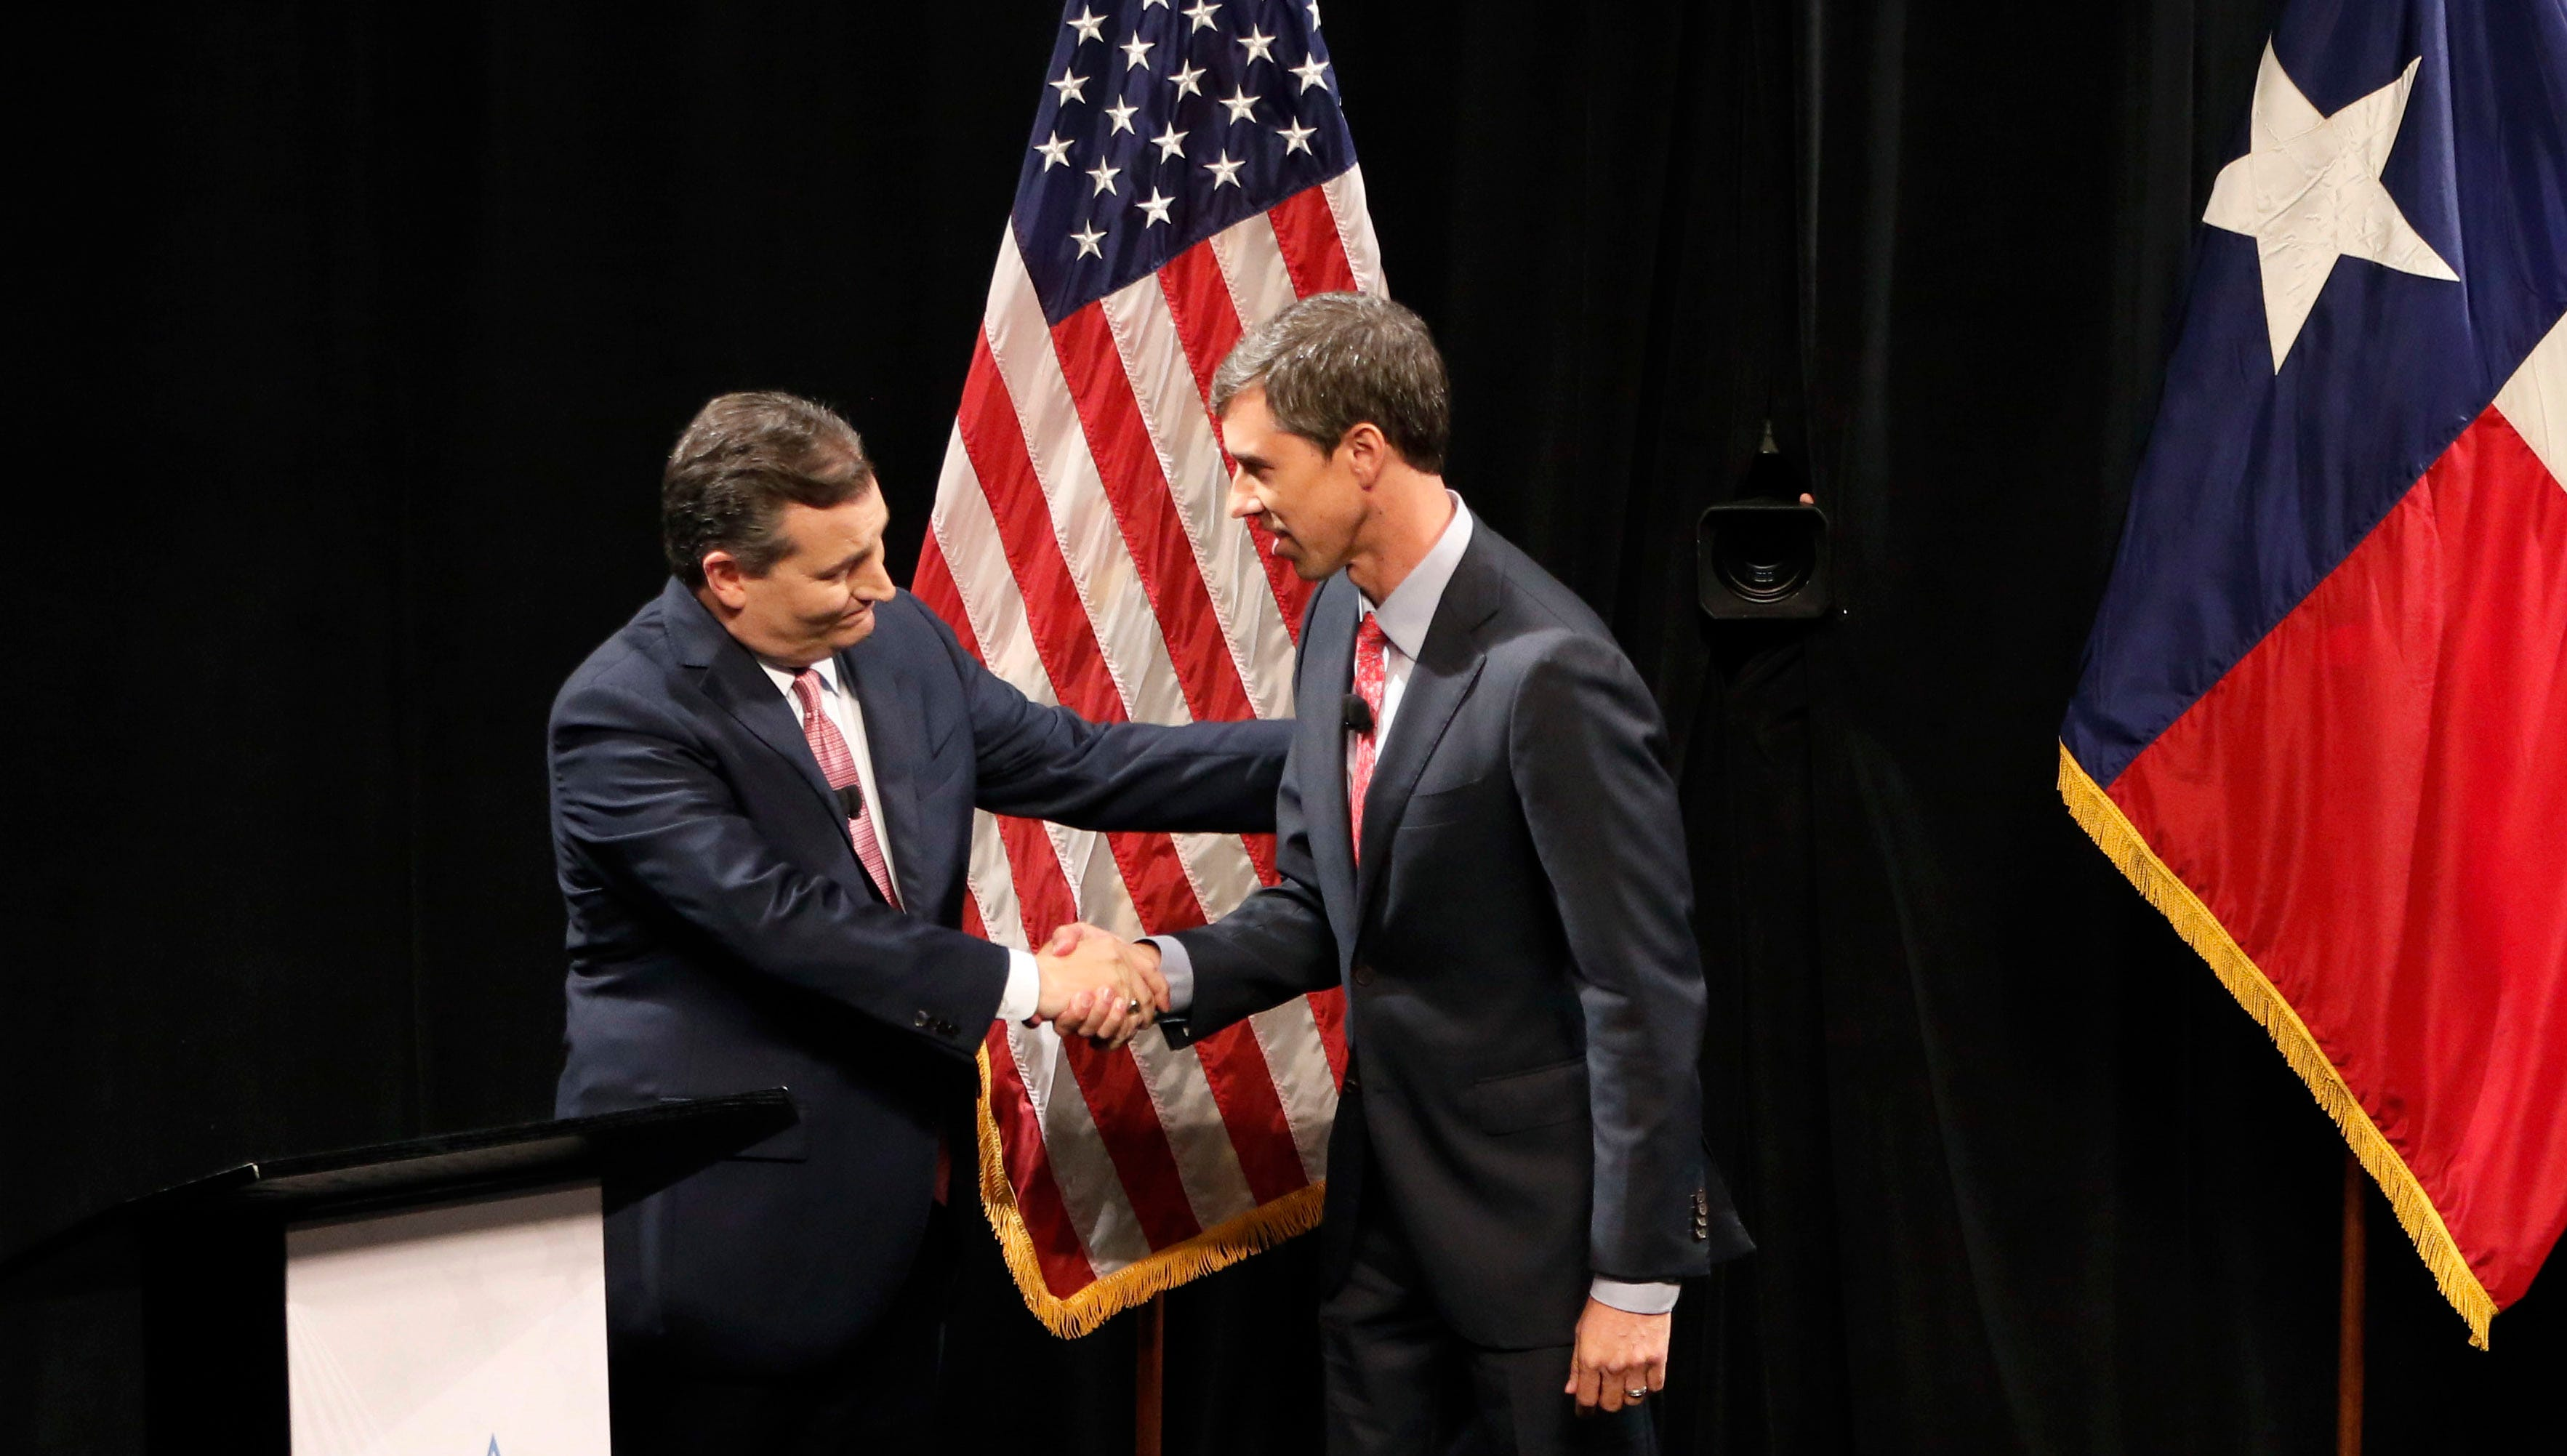 Republican U.S. Senator Ted Cruz, left, and Democratic U.S. Representative Beto O'Rourke, right, shake hands following their first debate for the Texas U.S. Senate in Dallas, Friday, Sept. 21, 2018. (Nathan Hunsinger/The Dallas Morning News via AP, Pool)